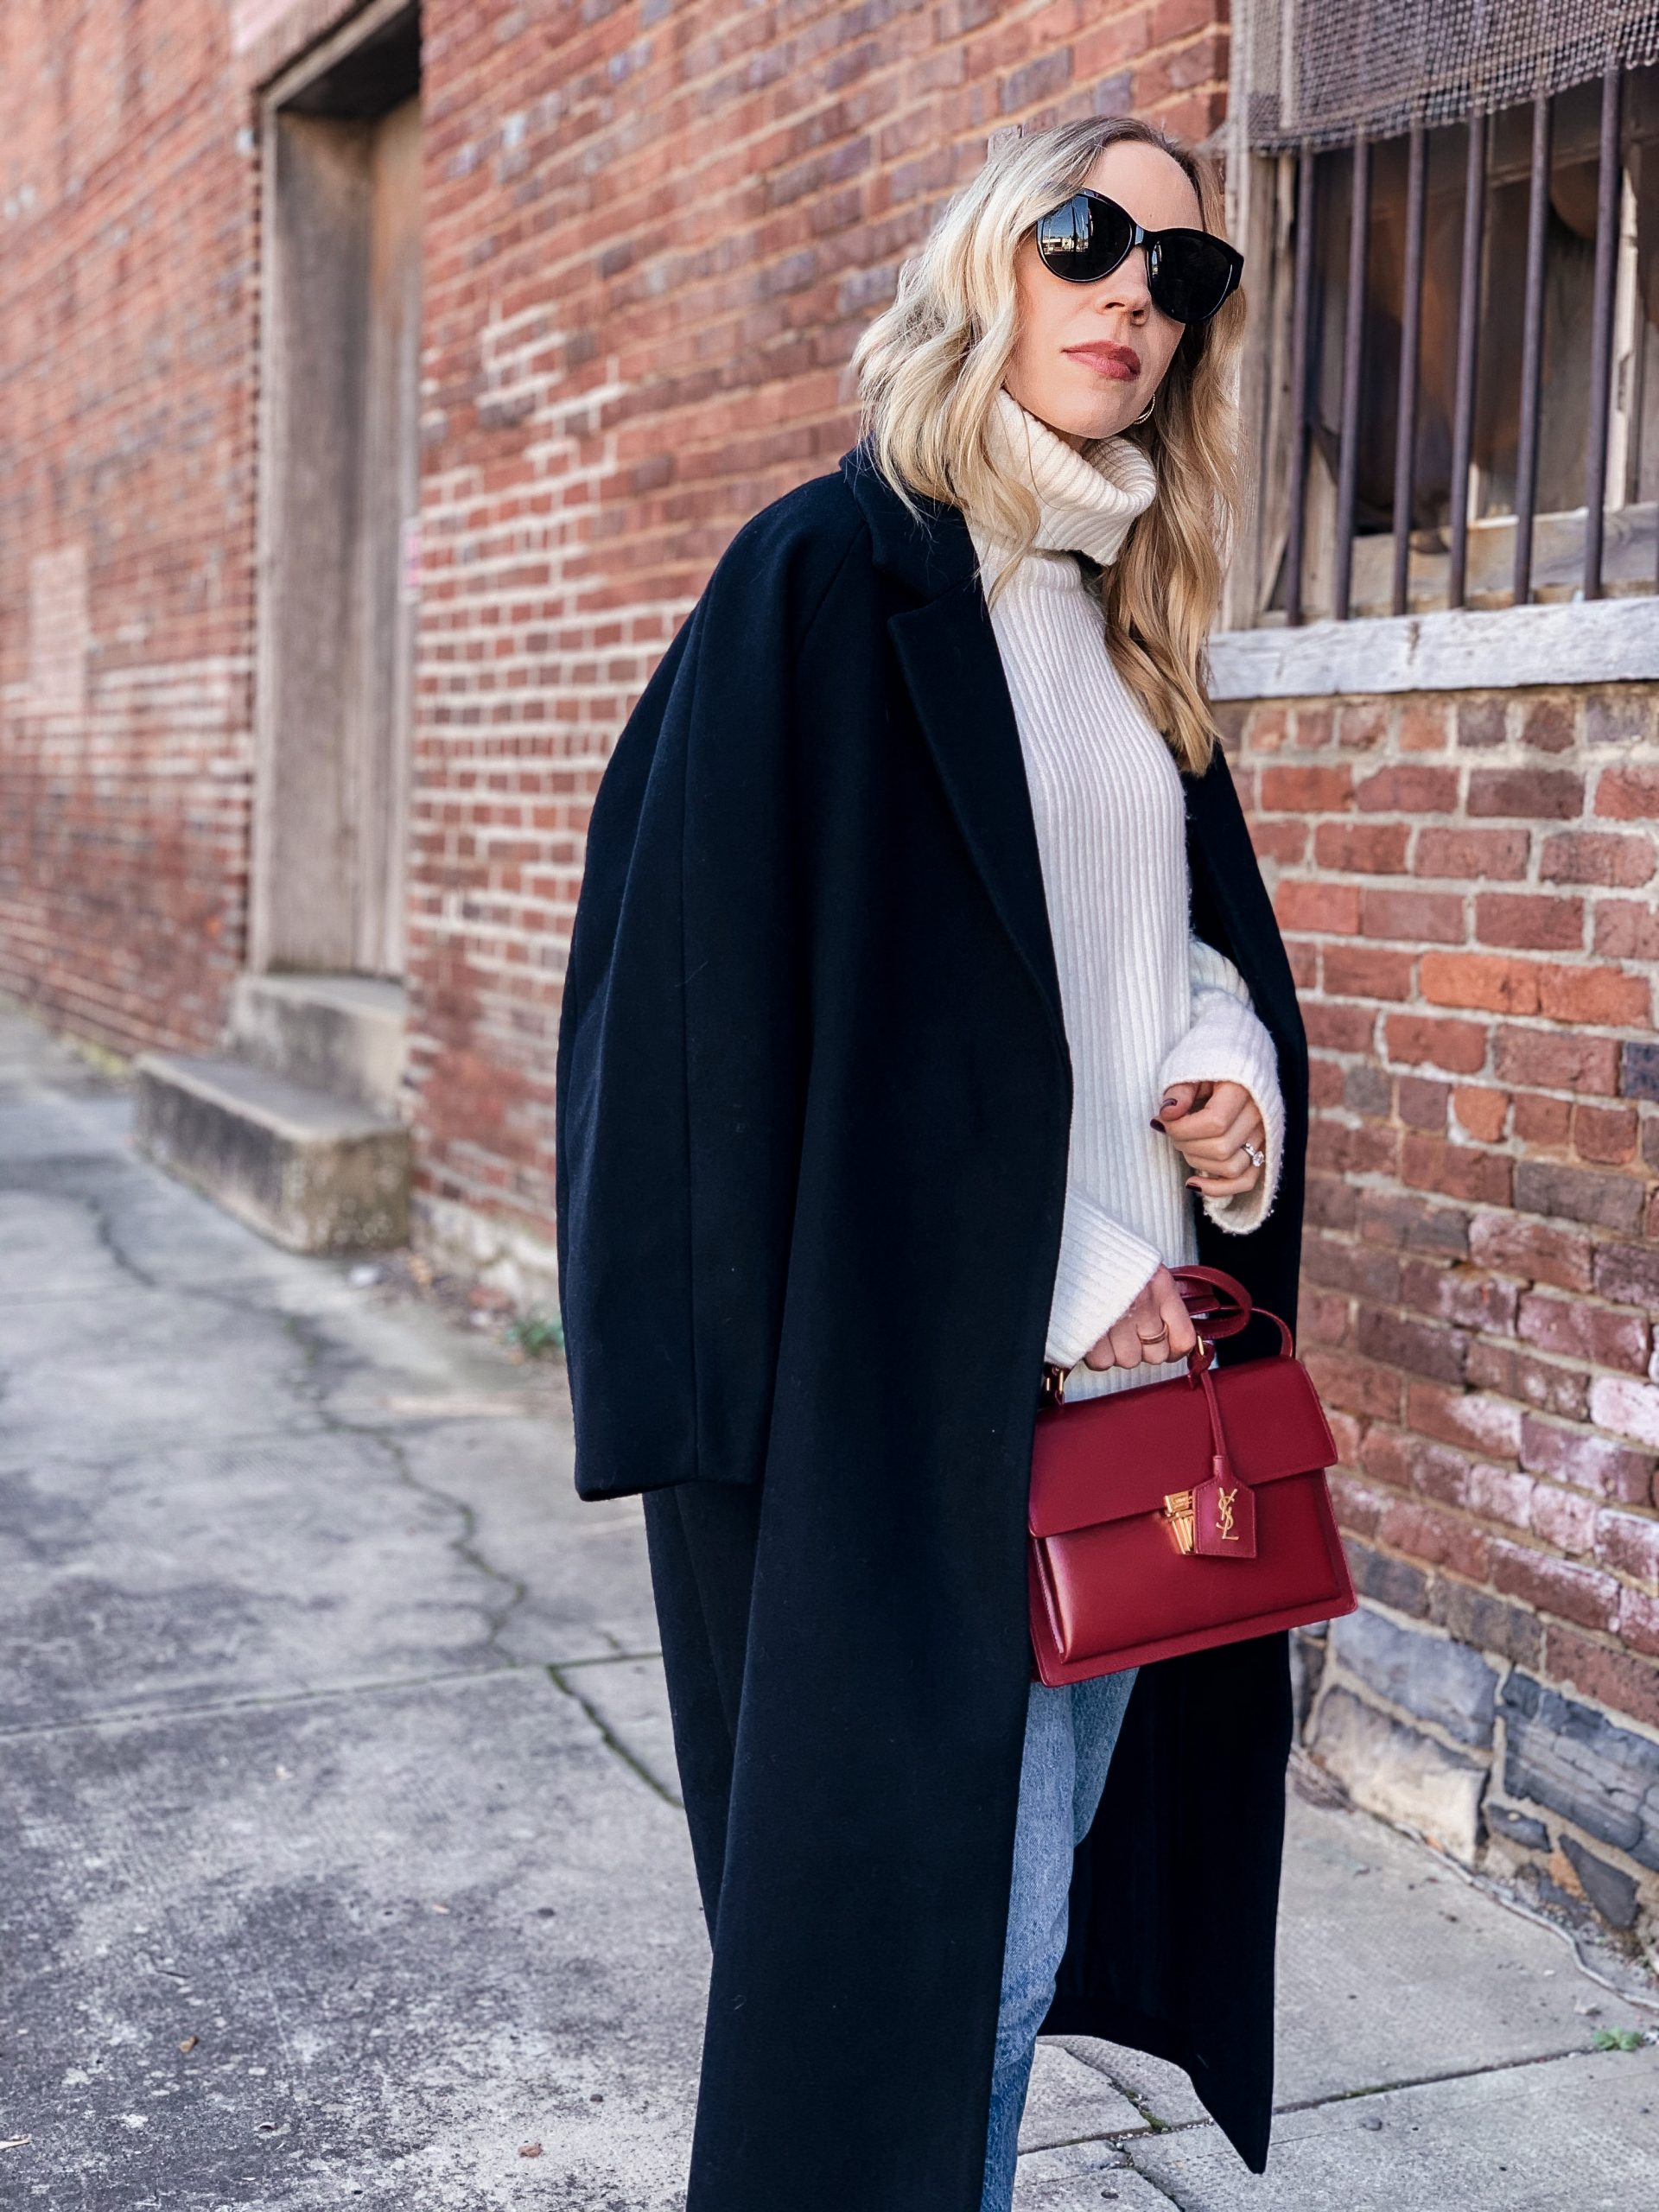 Meagan Brandon fashion blogger of Meagan's Moda wears oversized black wool coat over chunky cream sweater with red YSL bag